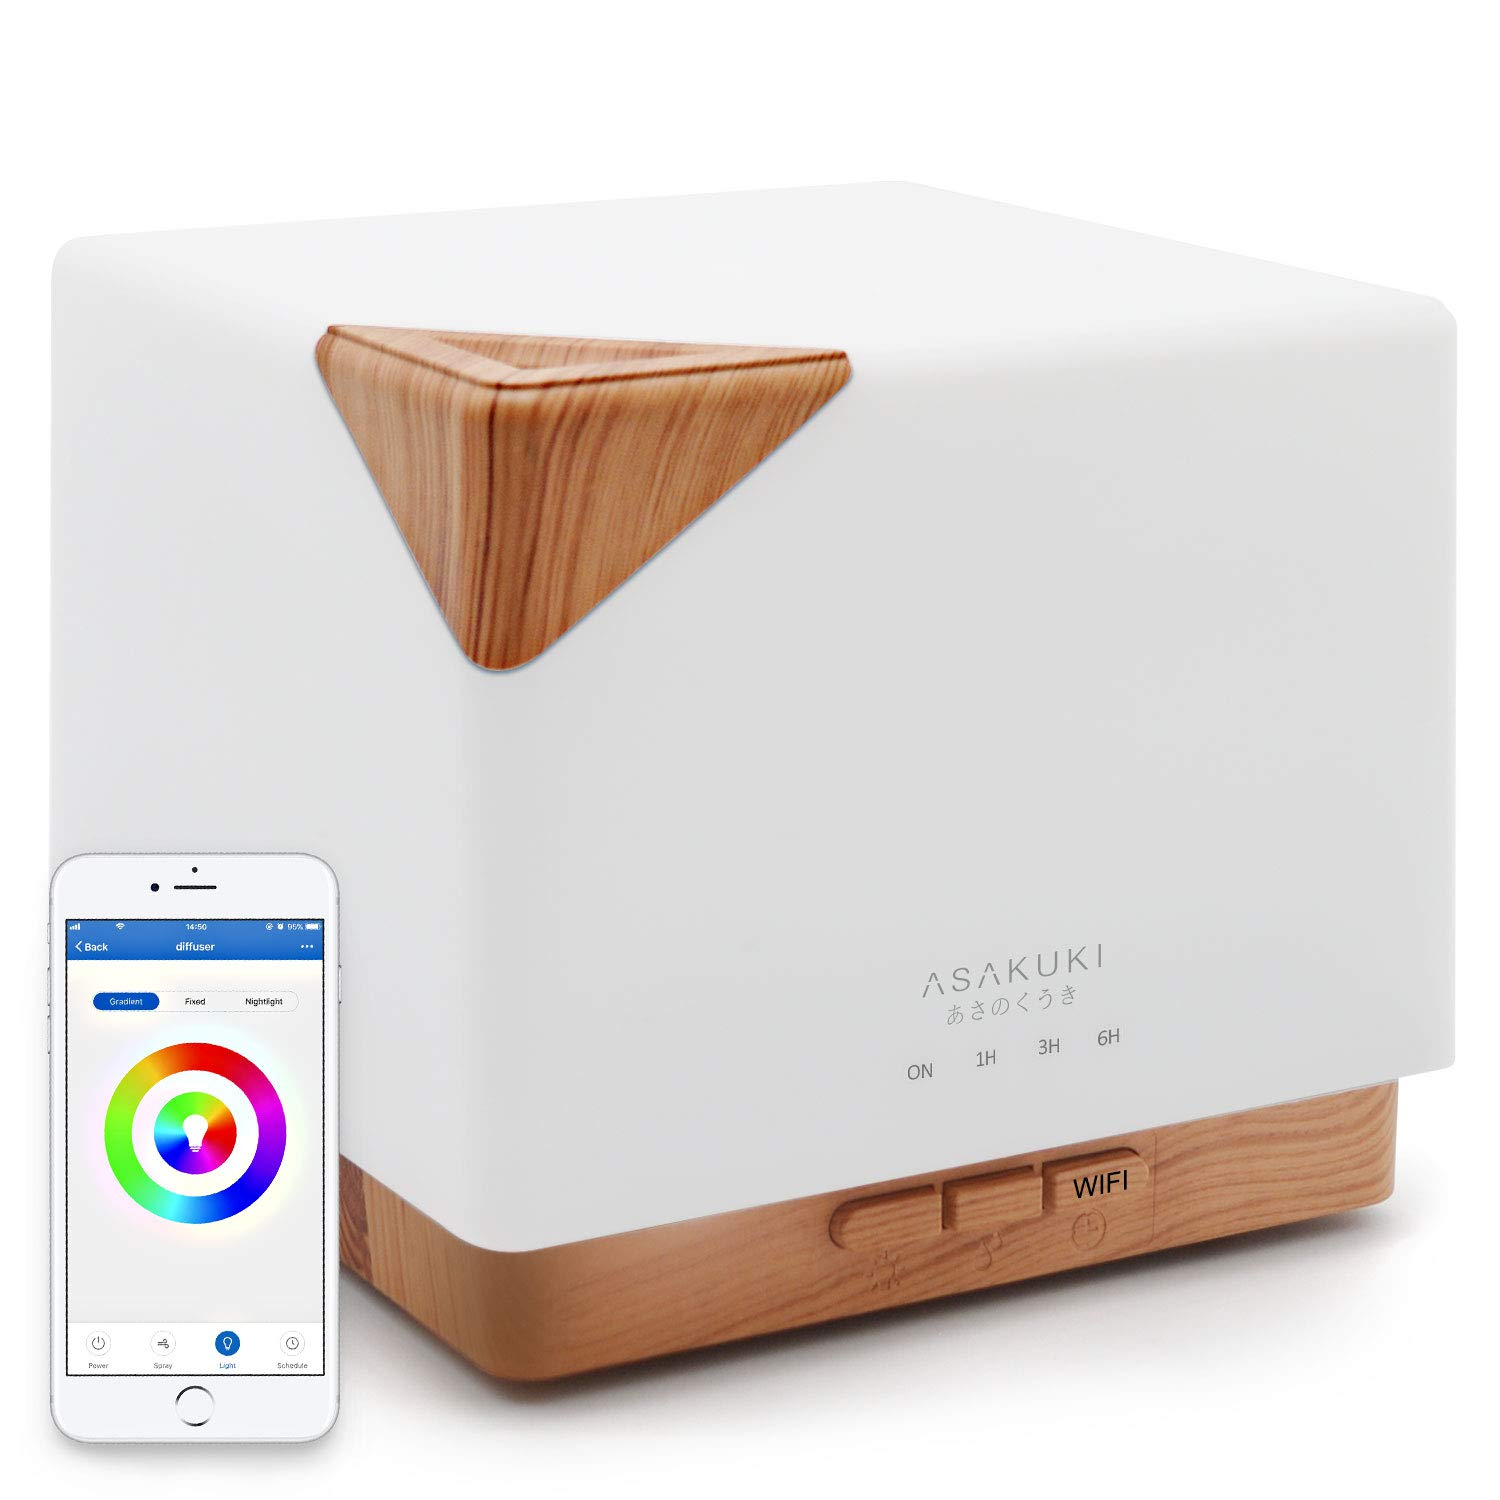 ASAKUKI Smart Wi-Fi Essential Oil Diffuser- App Control Compatible with Alexa, 700ml Aroma Humidifier for Relaxing Atmosphere in Bedroom and Office-Better Sleeping&Breathing ...